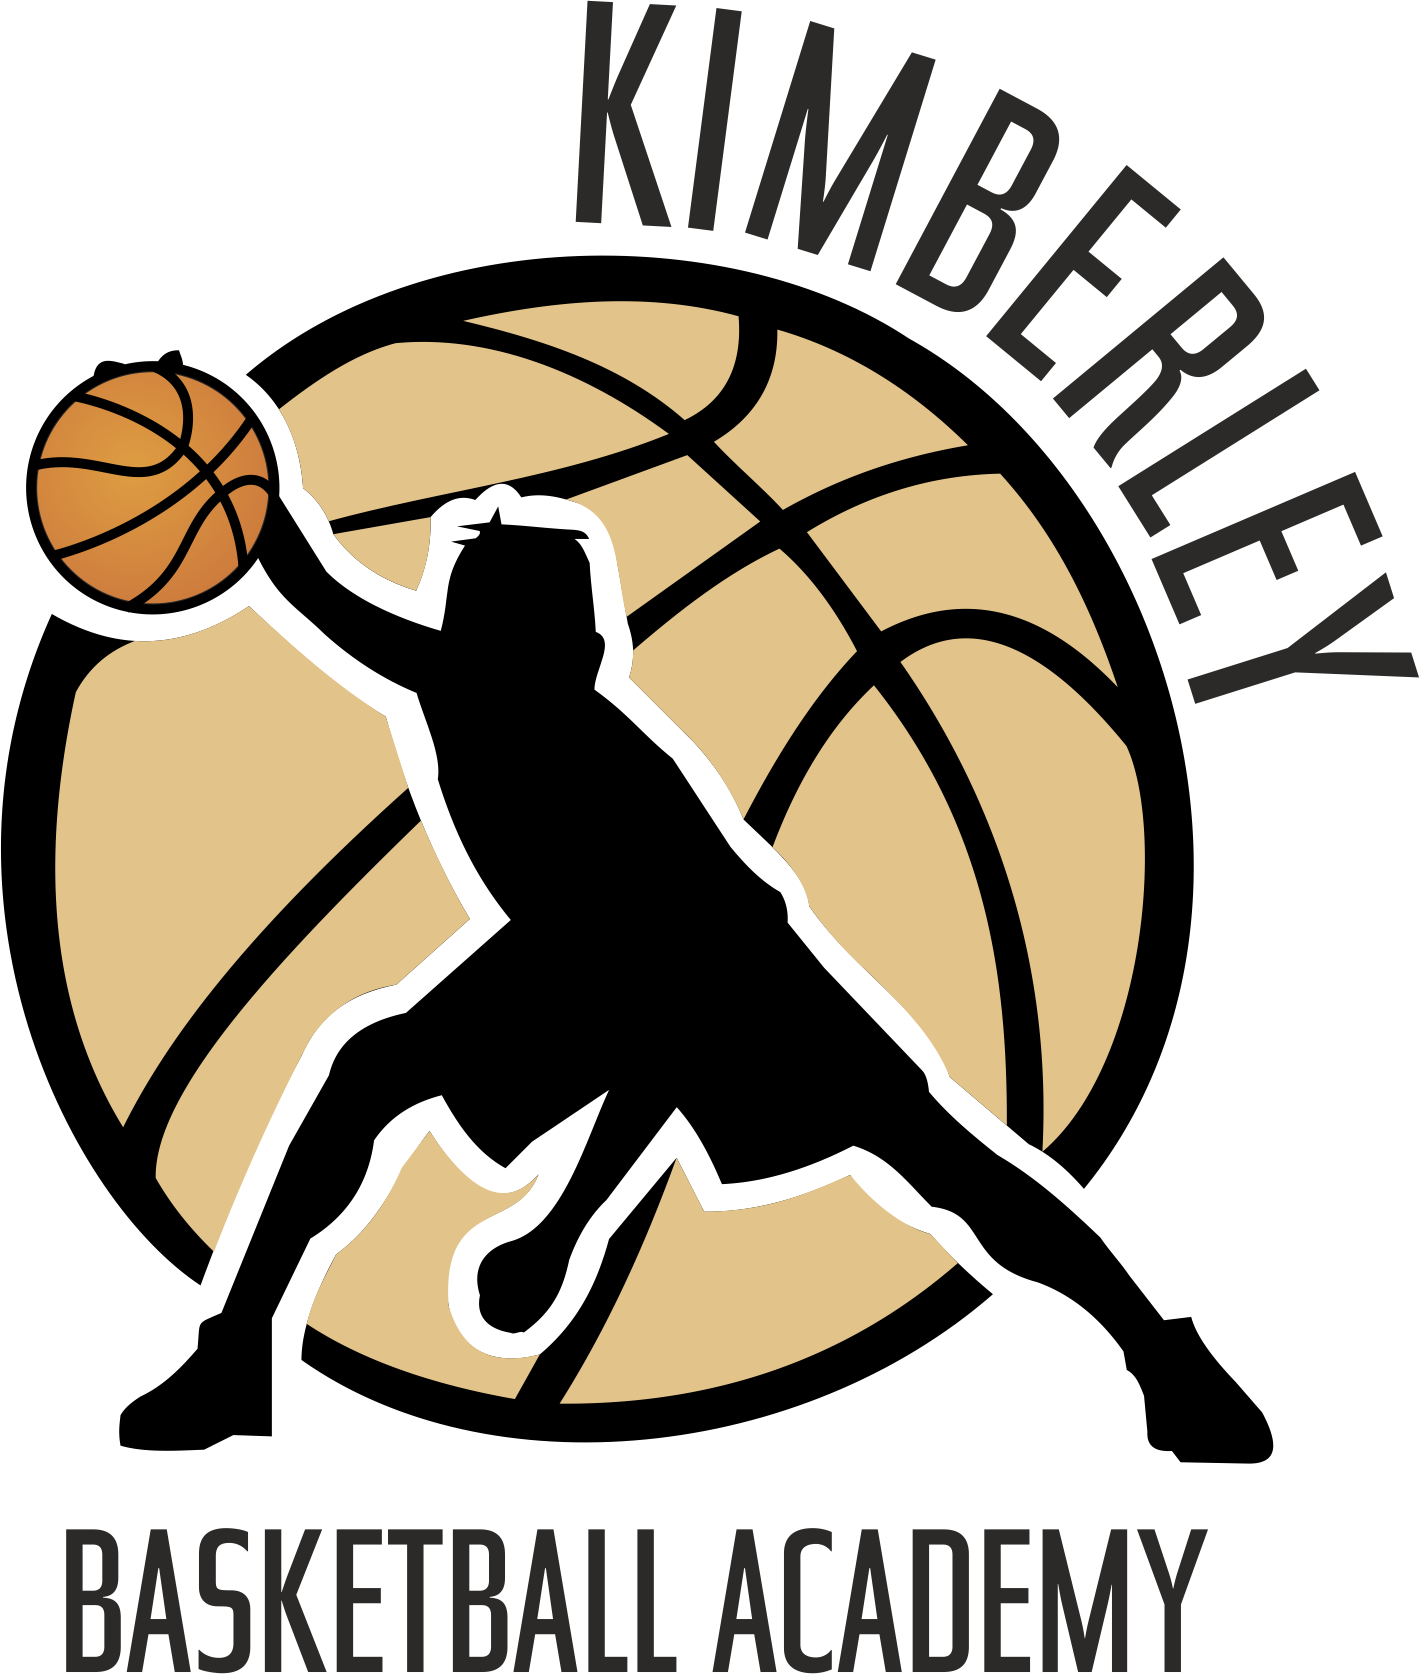 Tall basketball players clipart jpg library stock Home | Kimerley Basketball Academy jpg library stock